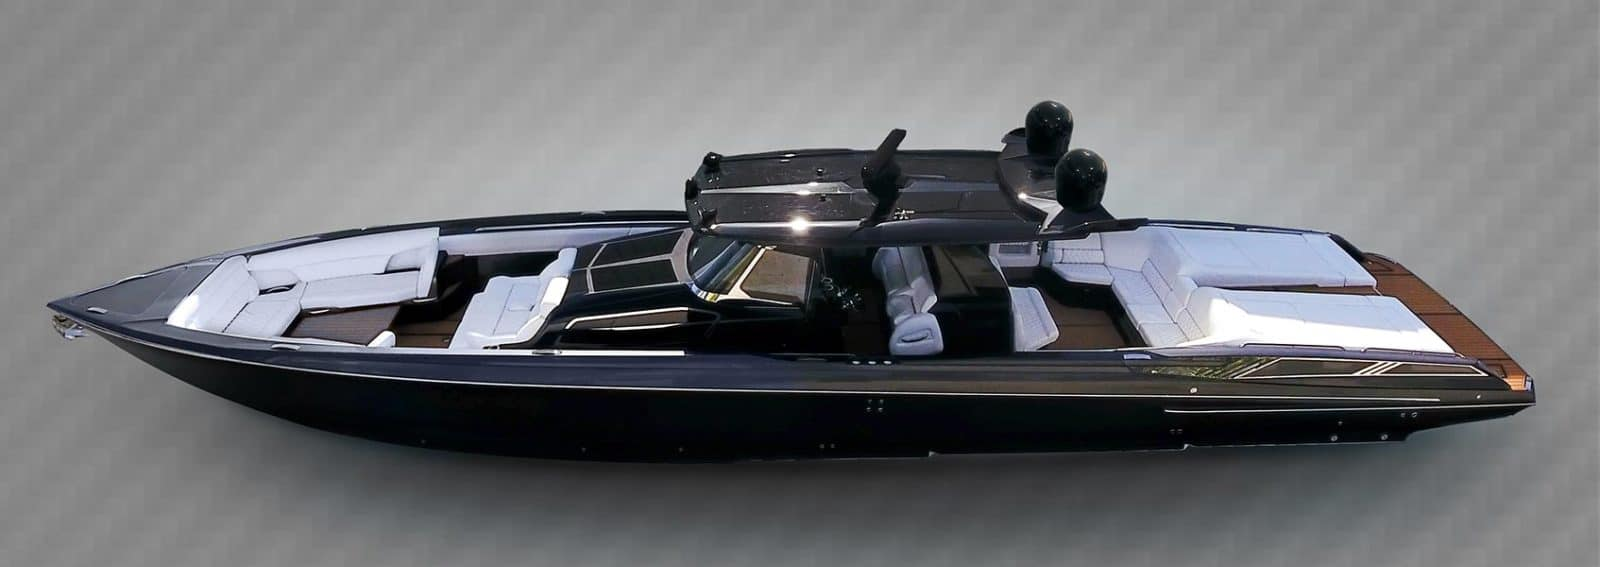 New  2021 55' Nor-tech 550 Sport Boat Engine in Metairie,